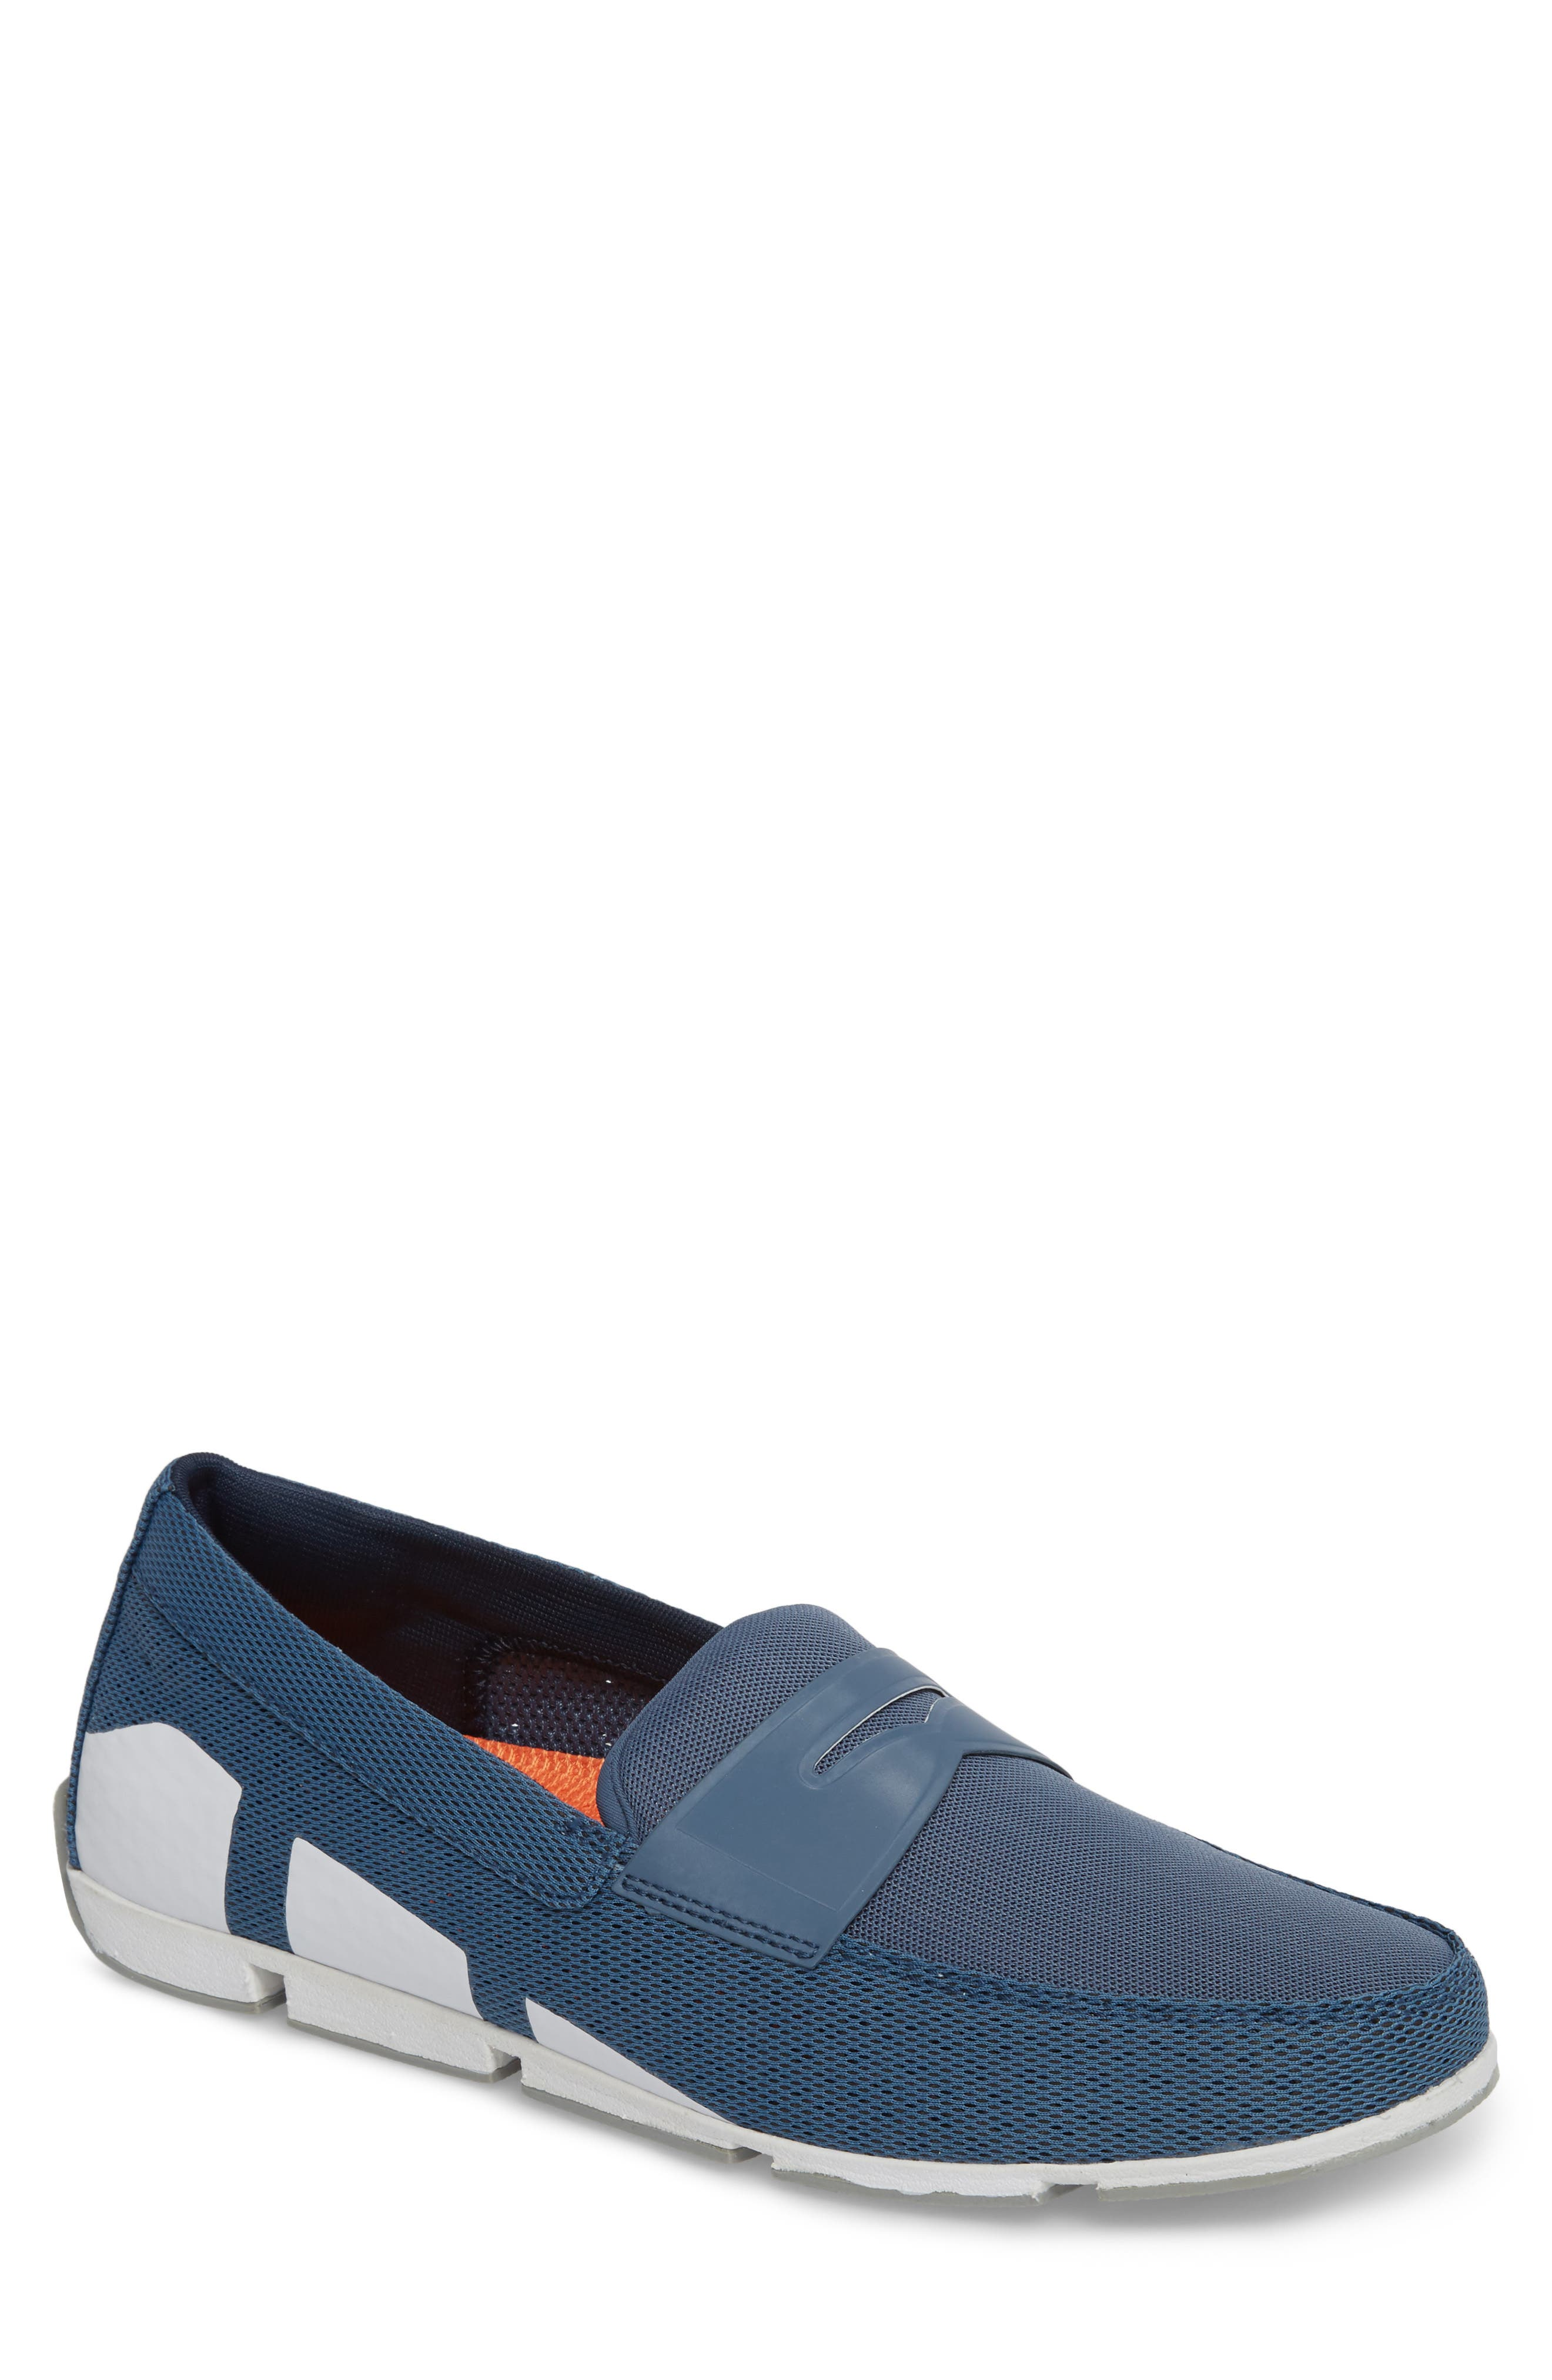 Breeze Penny Loafer,                         Main,                         color, SLATE/ WHITE/ GREY FABRIC